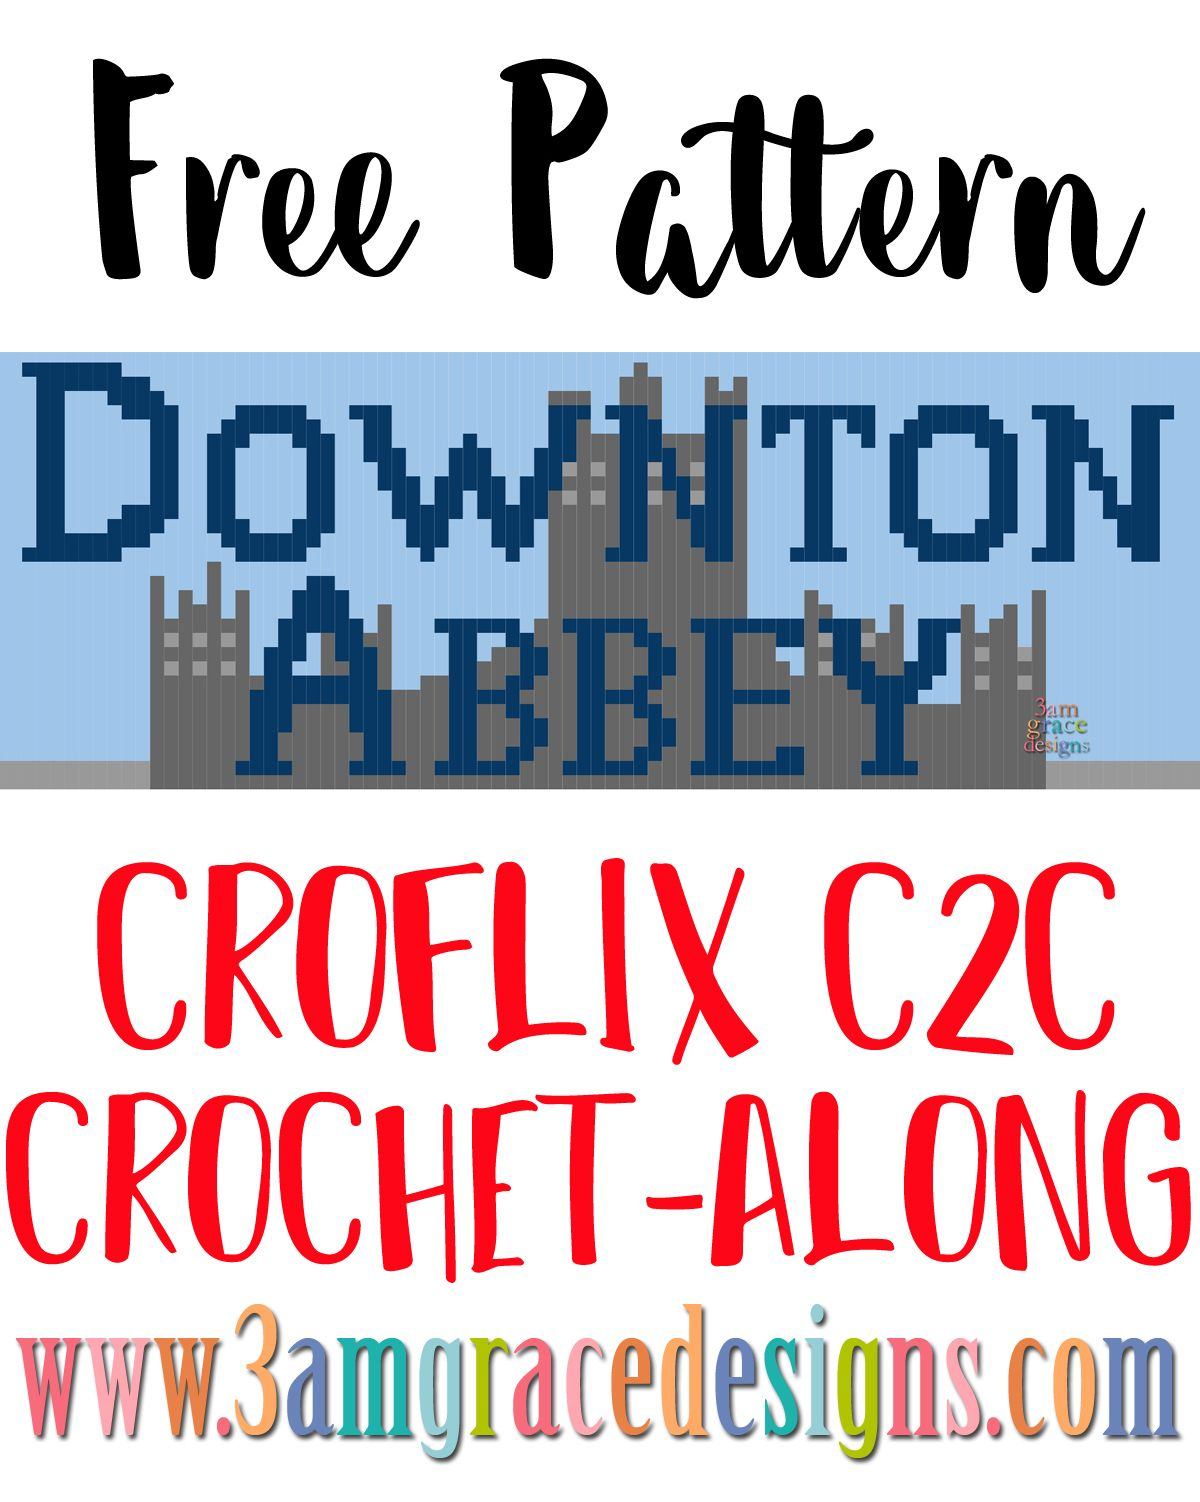 Croflix C2C CAL - Downton Abbey - Free Crochet Pattern